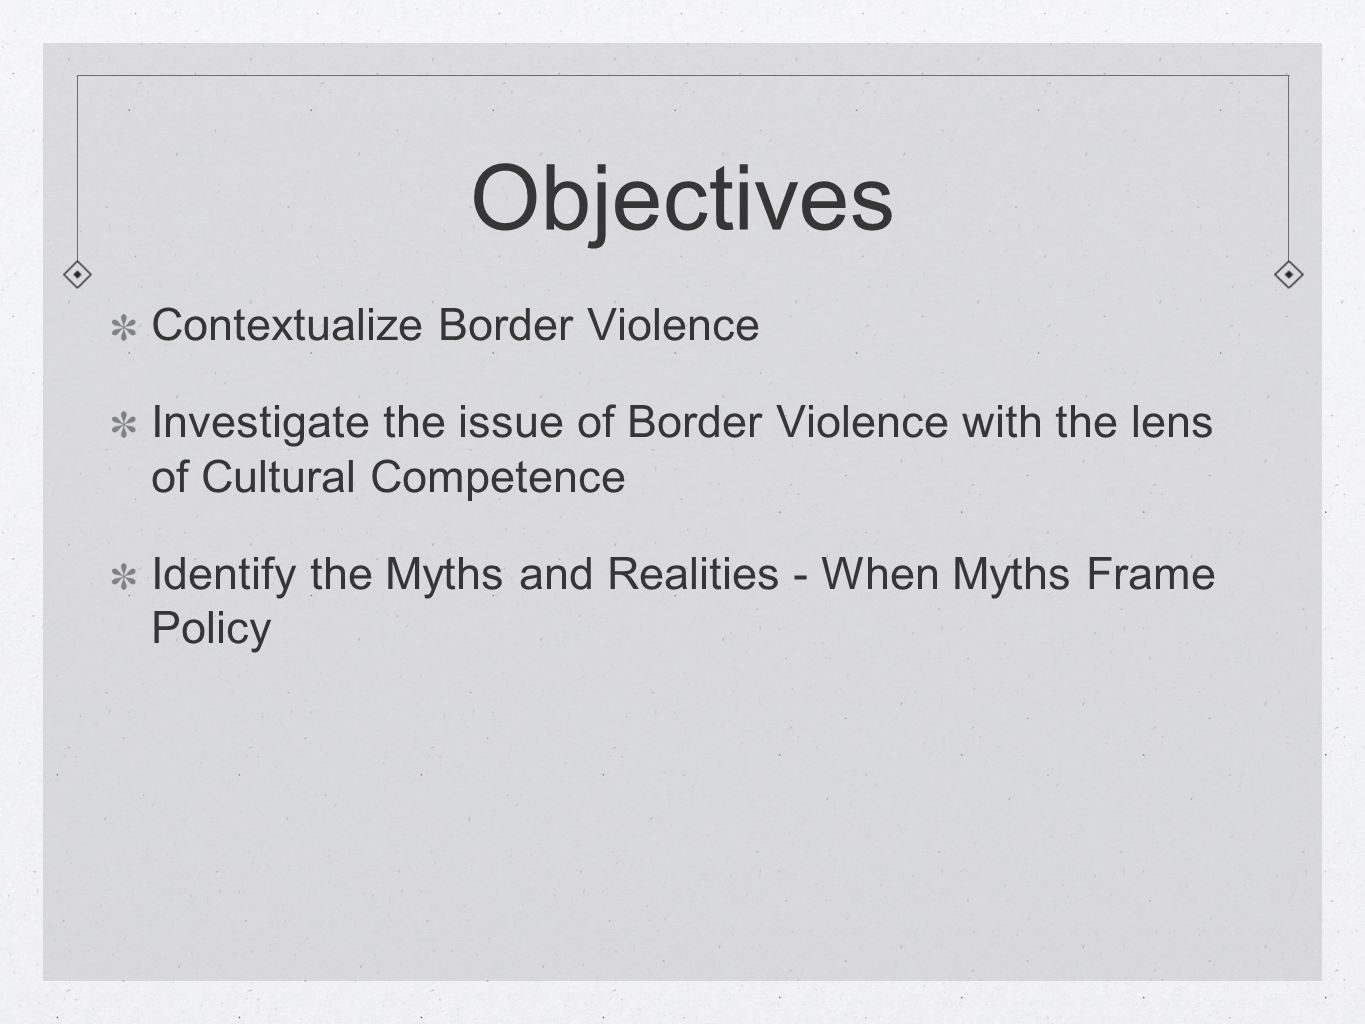 Objectives Contextualize Border Violence Investigate the issue of Border Violence with the lens of Cultural Competence Identify the Myths and Realities - When Myths Frame Policy